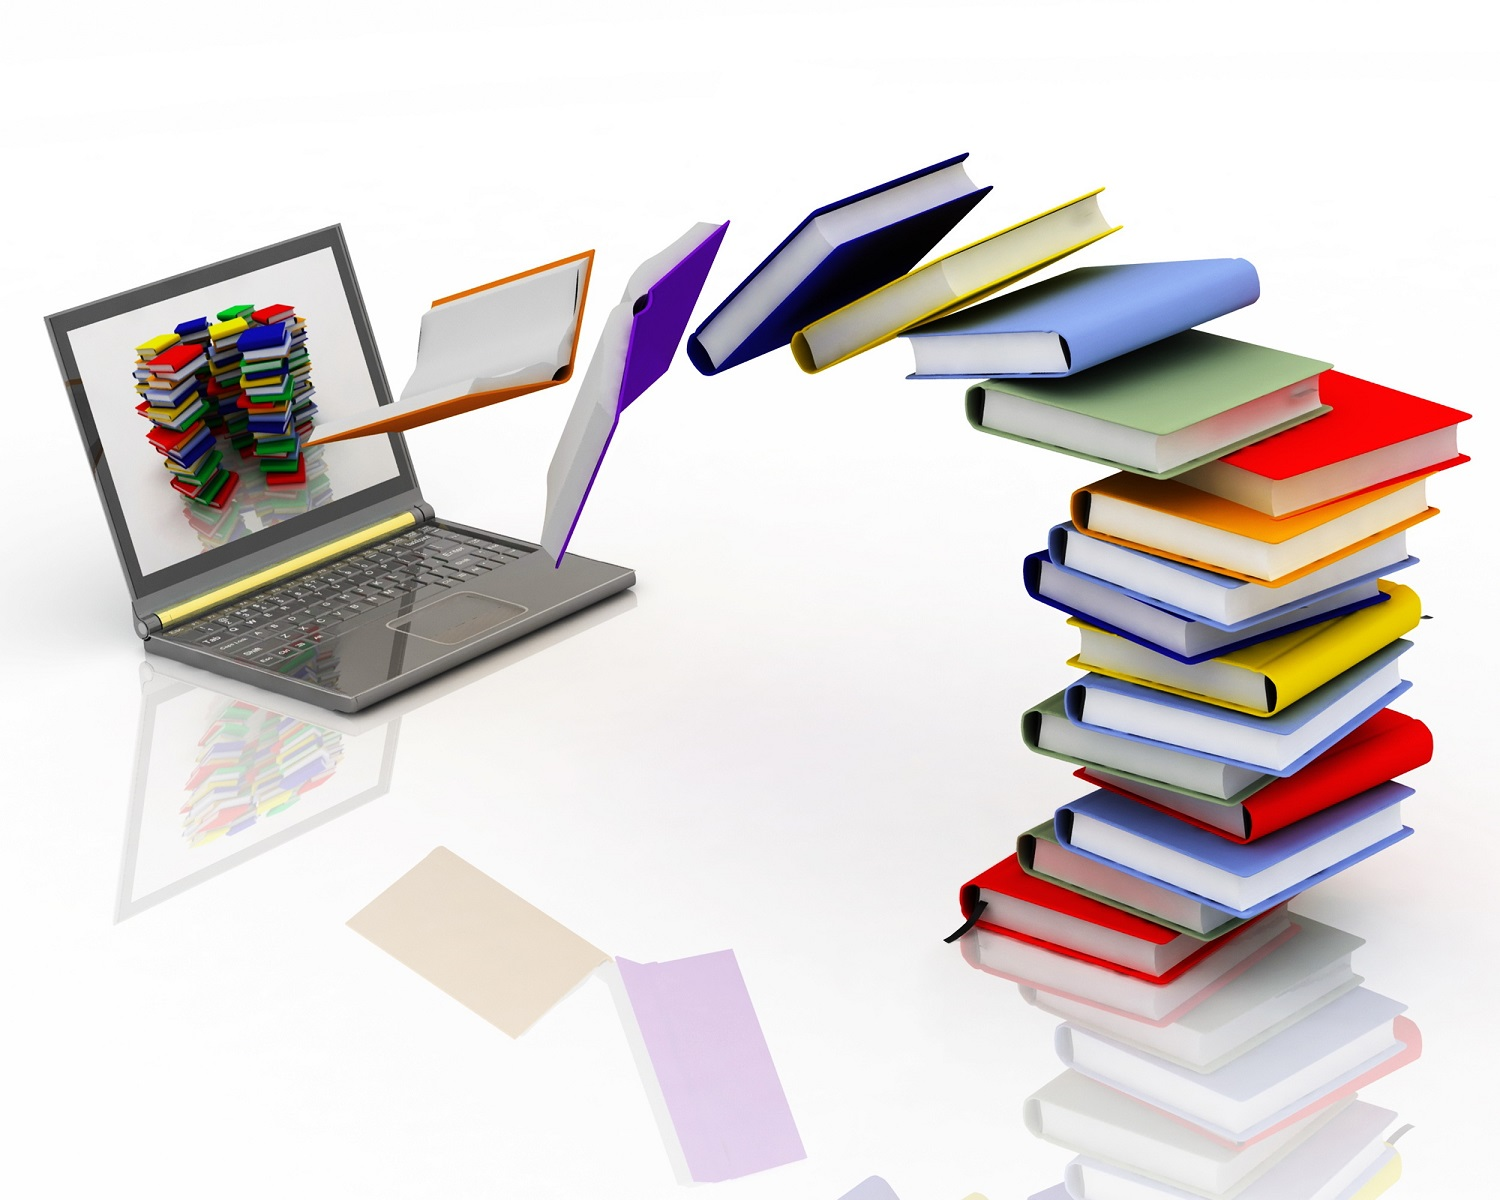 Show the transition of books to e-books, the demand of digital publishing is increasing with the modern times)